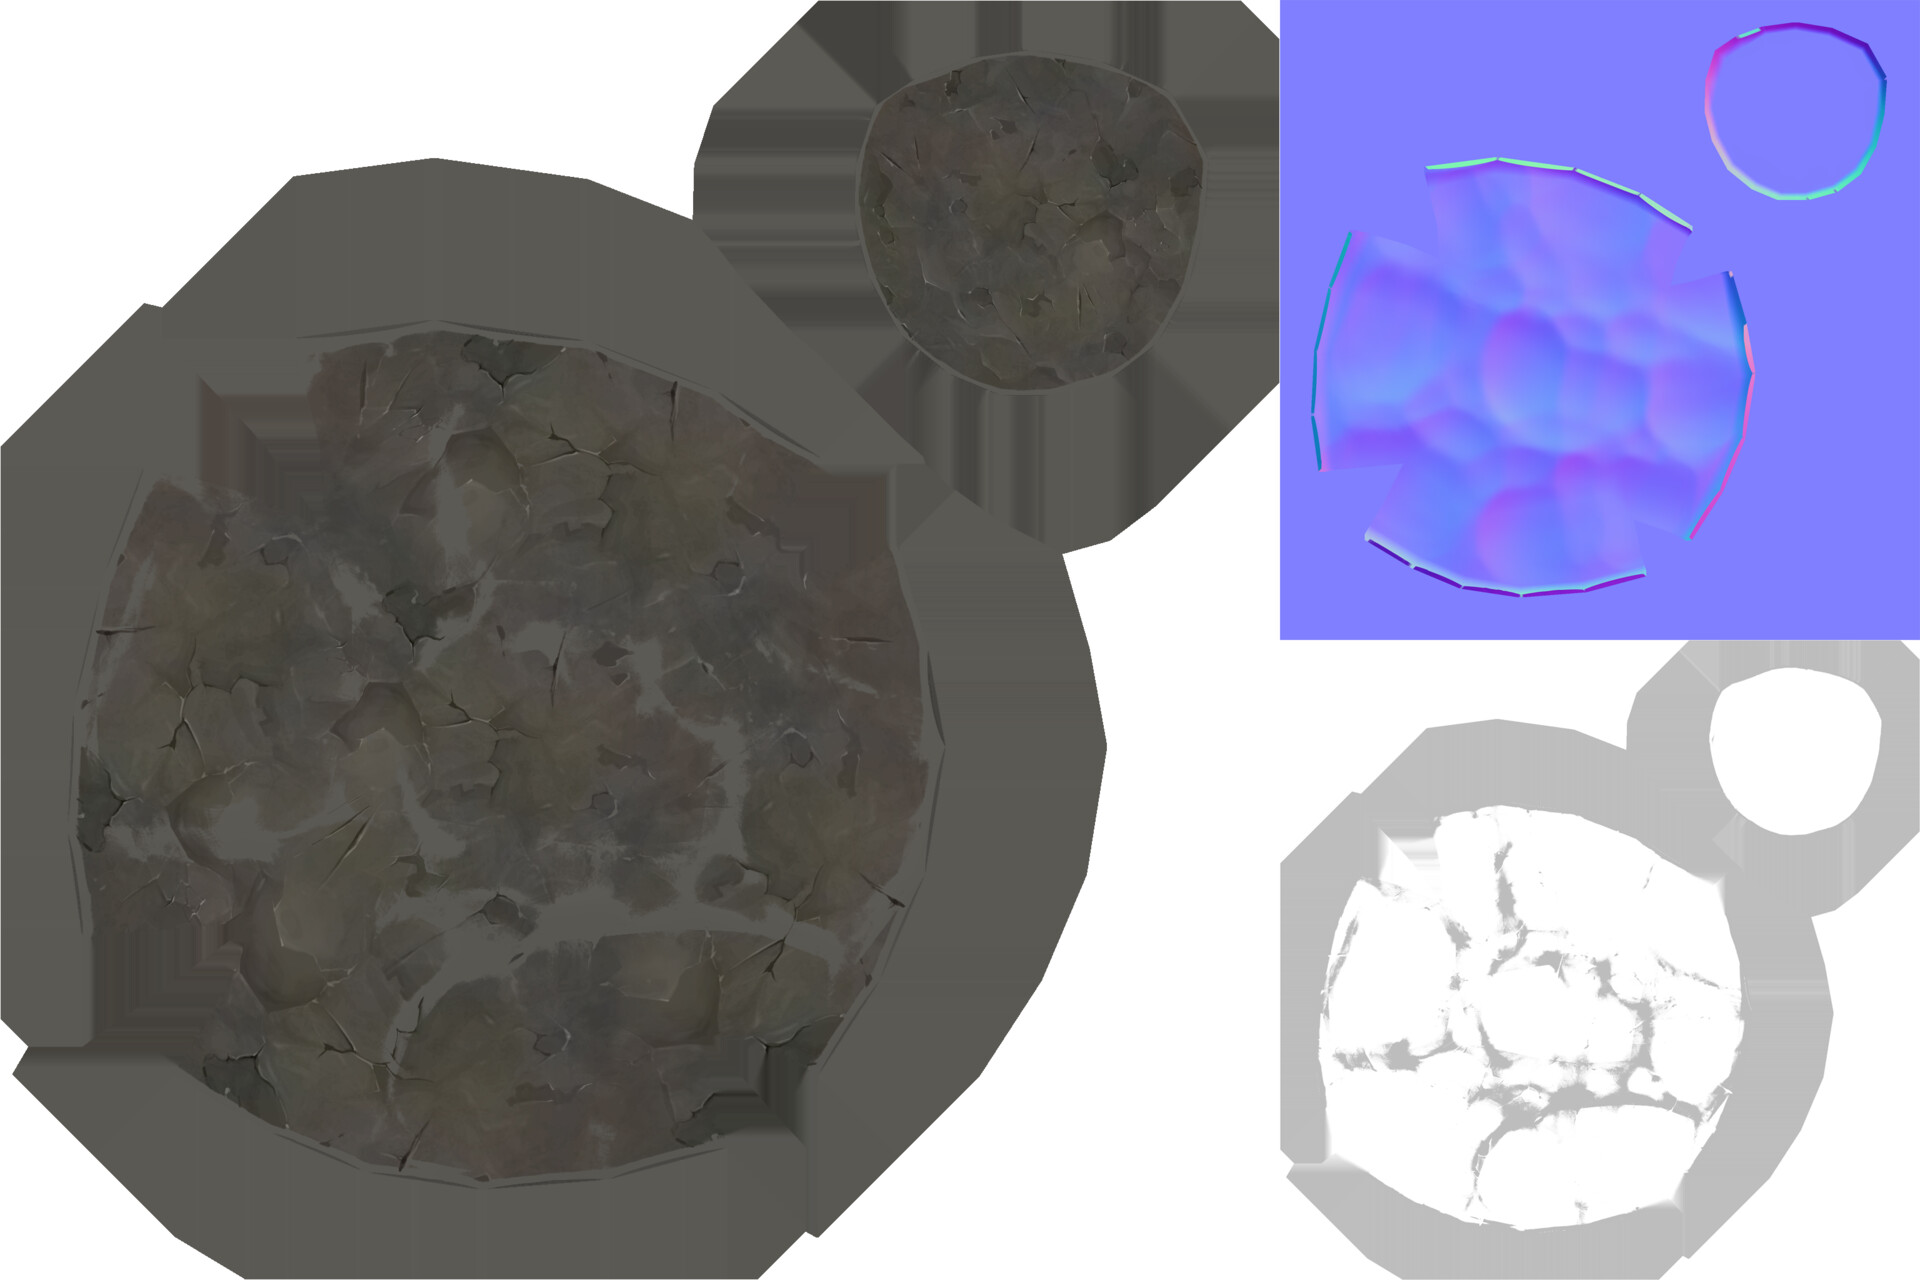 Small rock albedo, normal, and roughness maps